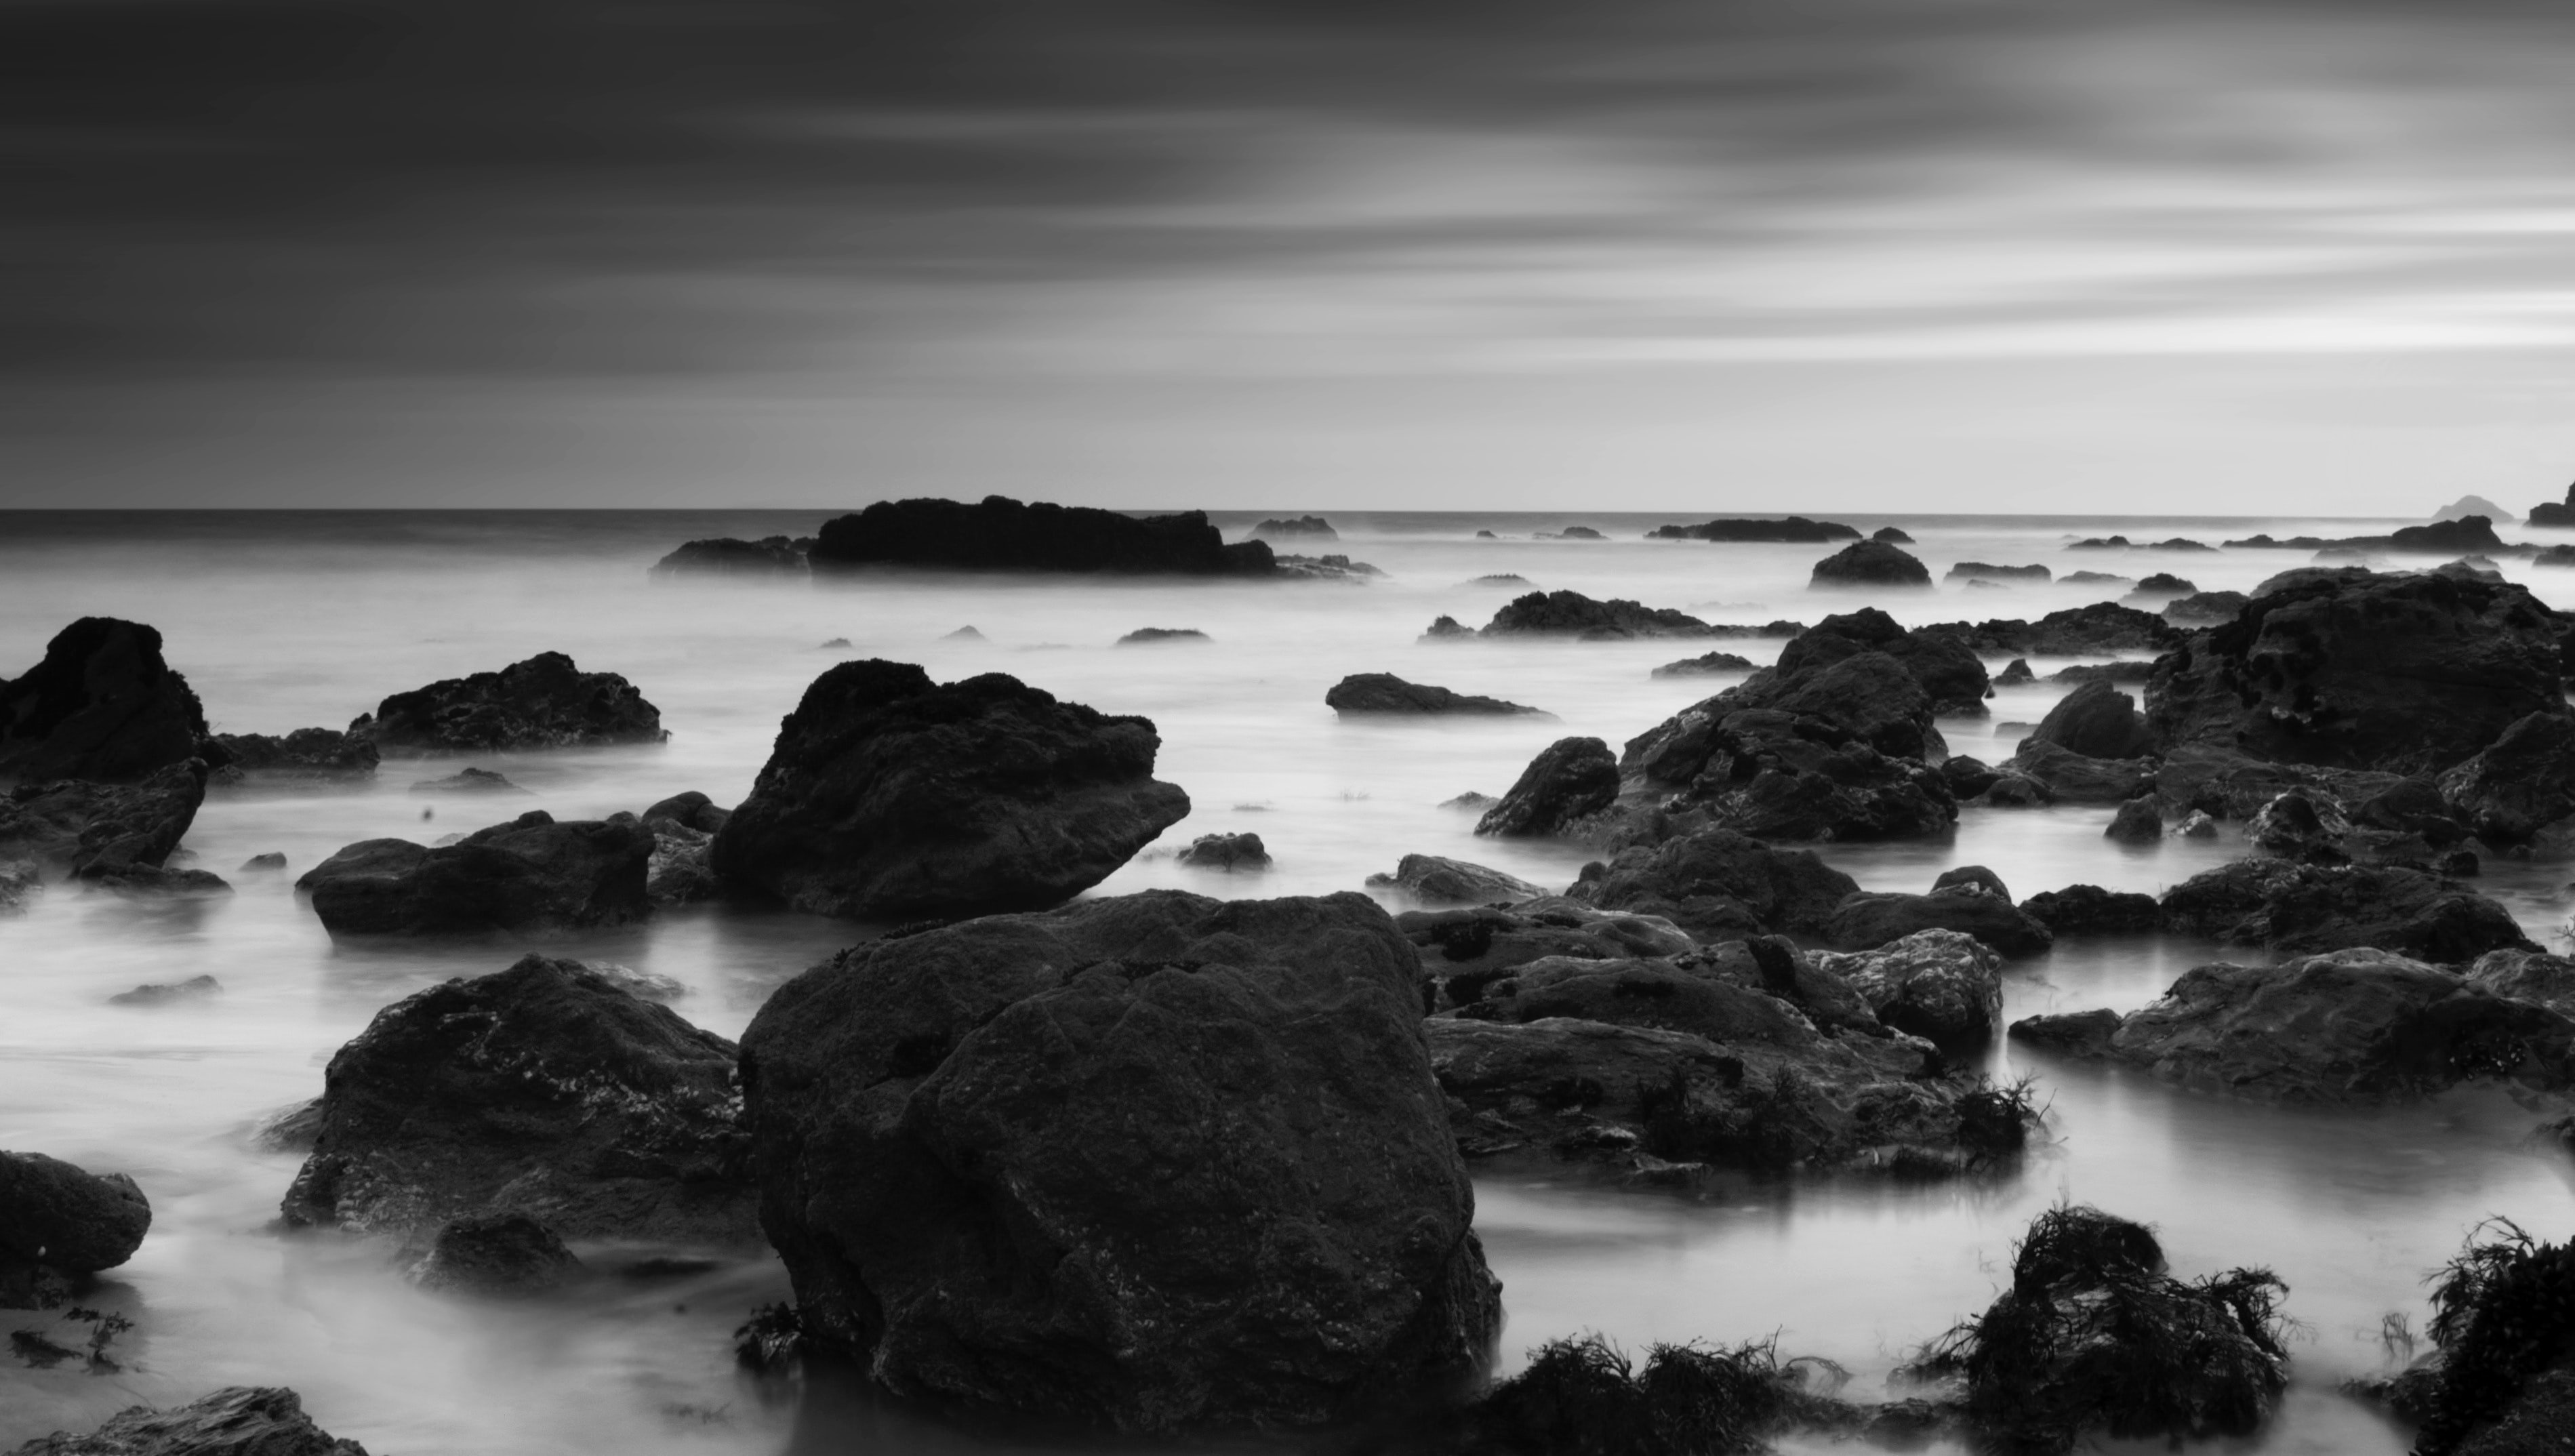 A black and white photo of rocks protruding from the ocean along the coast